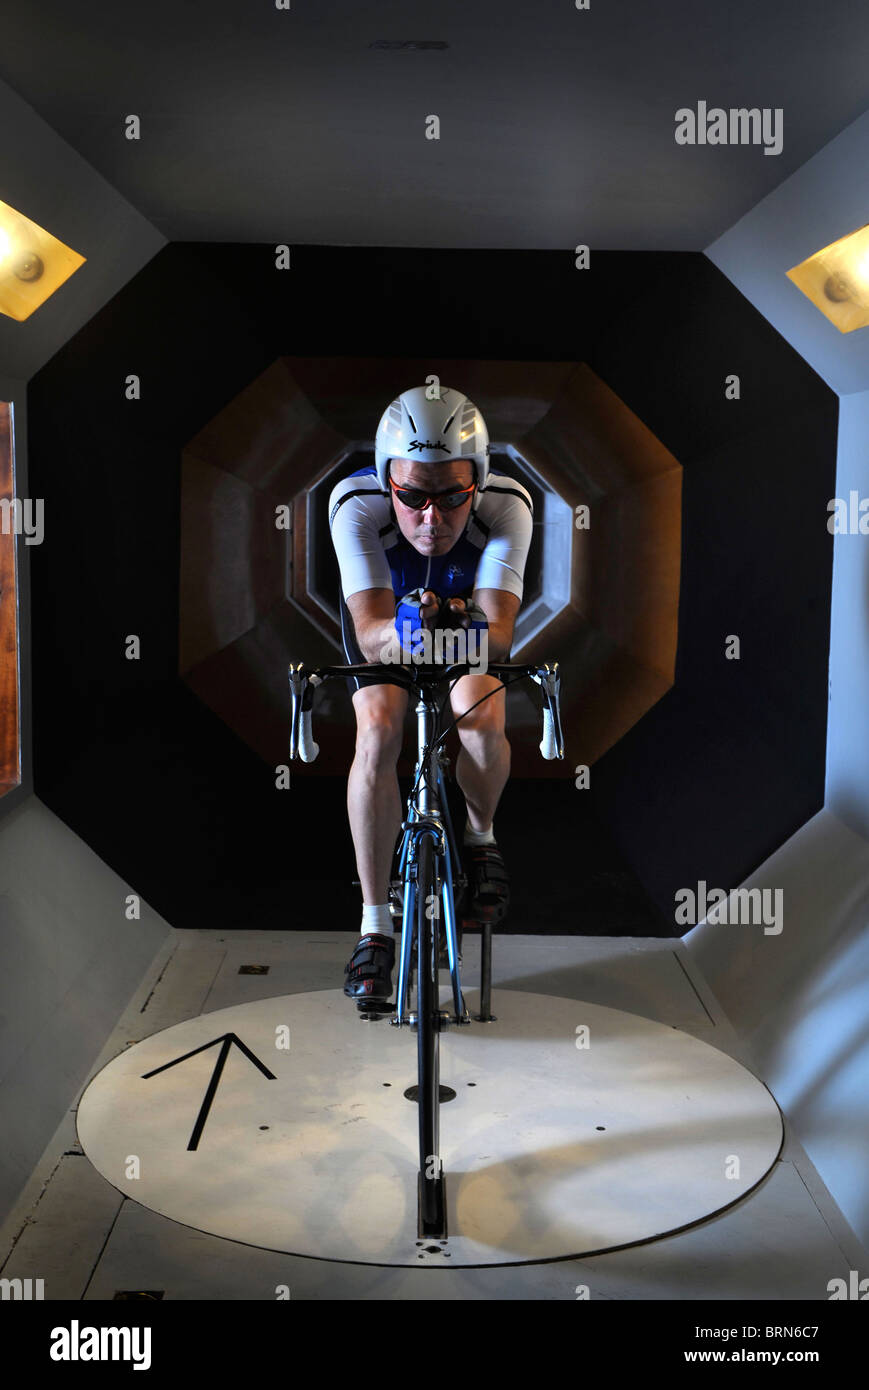 A wind tunnel experiment to find optimum aerodynamics for cycling clothing and racing bicycle design - Stock Image